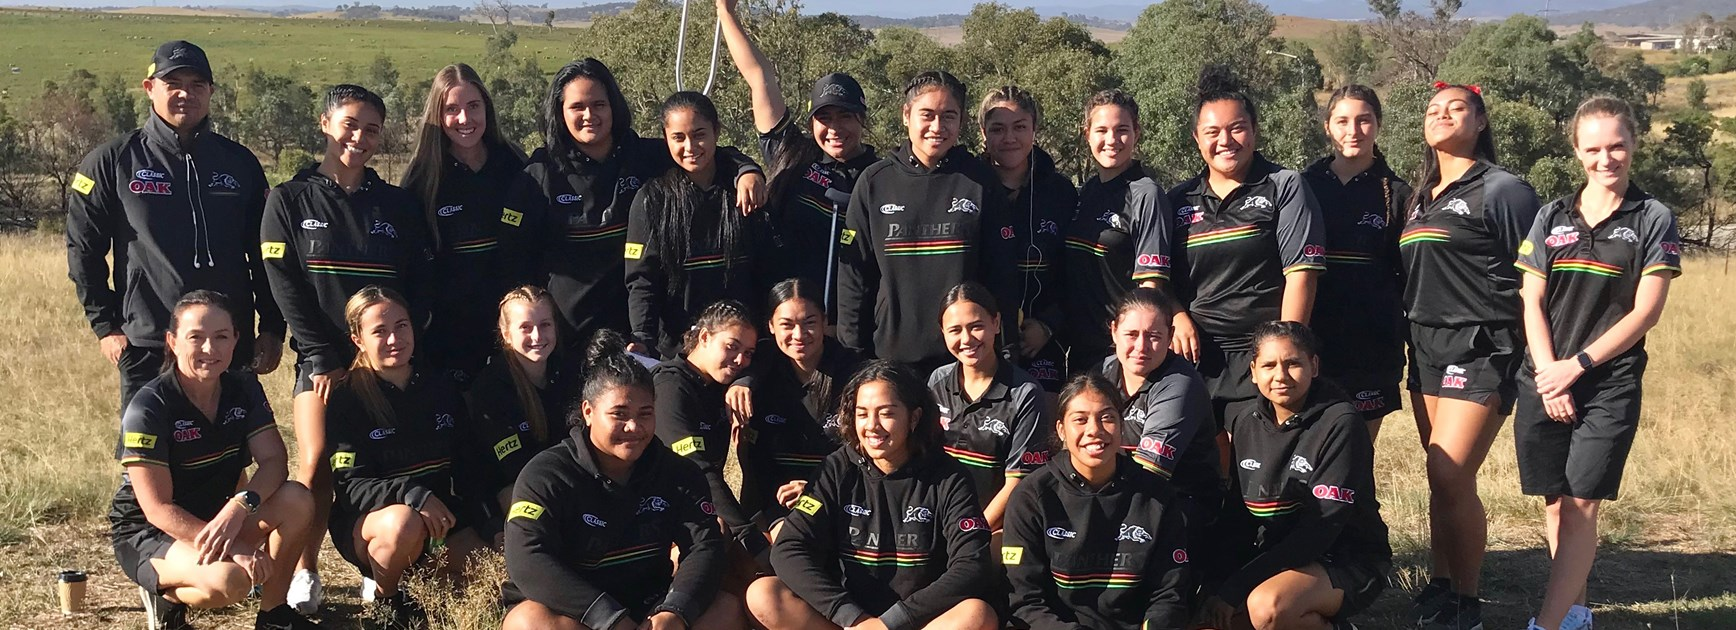 Tarsha Gale Panthers cut down Canberra